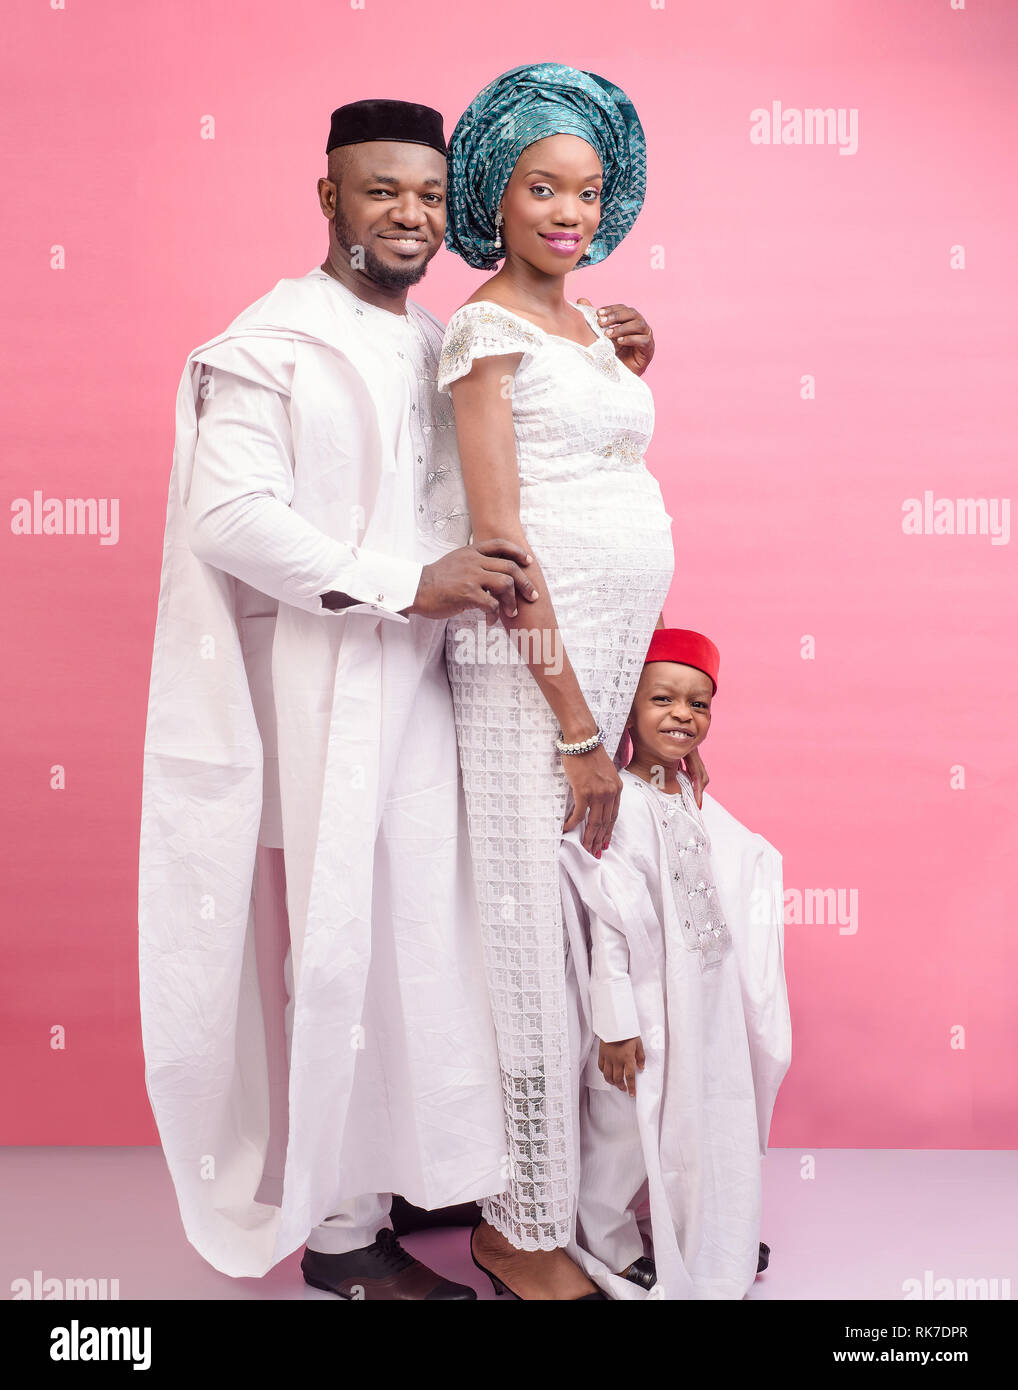 Happy Nigerian father, mother and son dressed in all white traditional attire - Stock Image